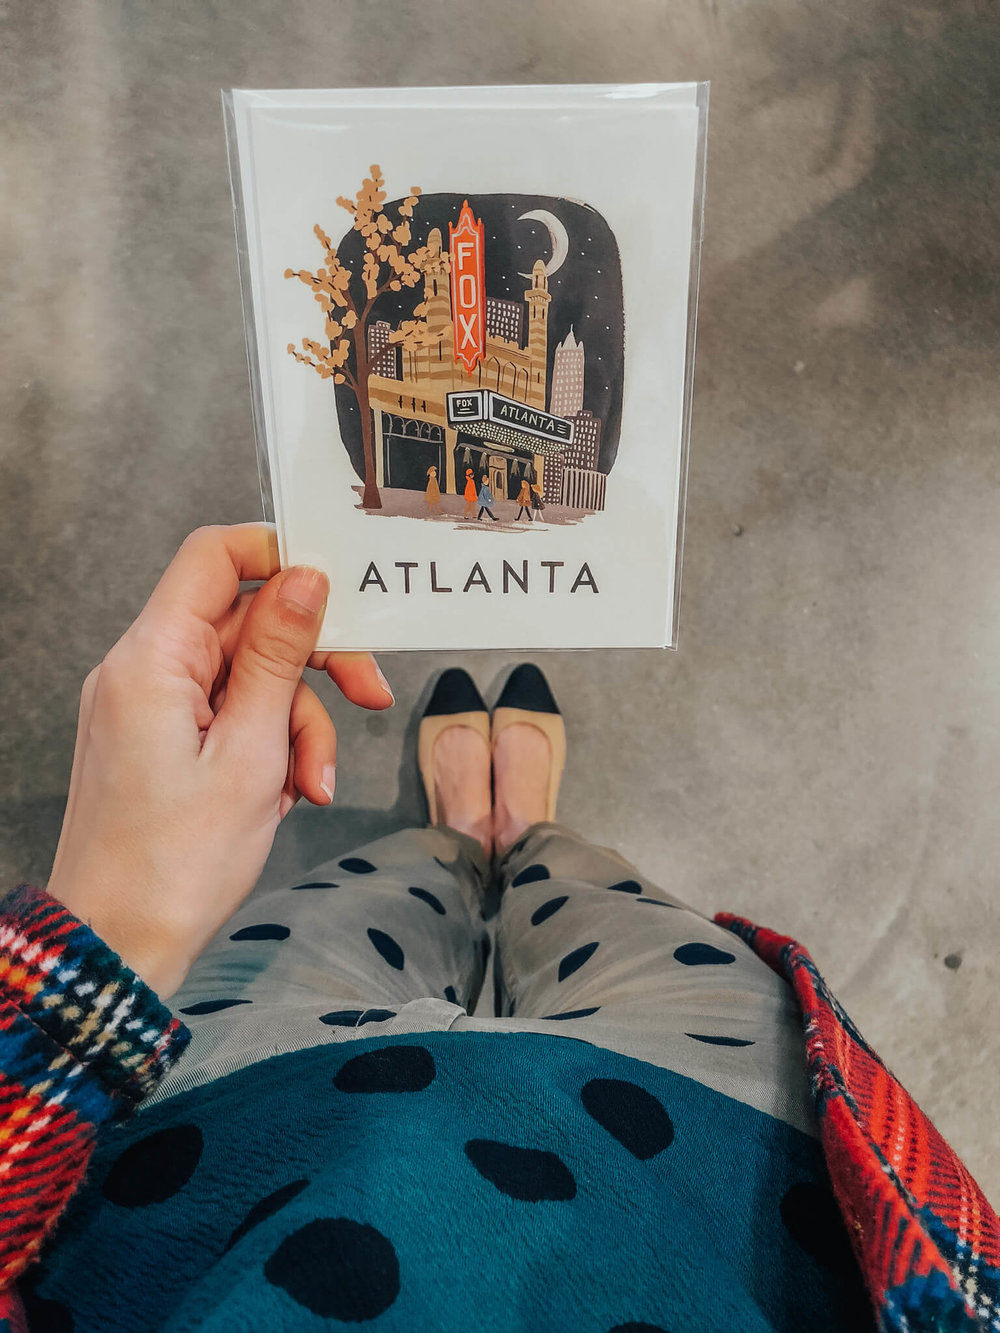 AtlantaPostcard.jpg